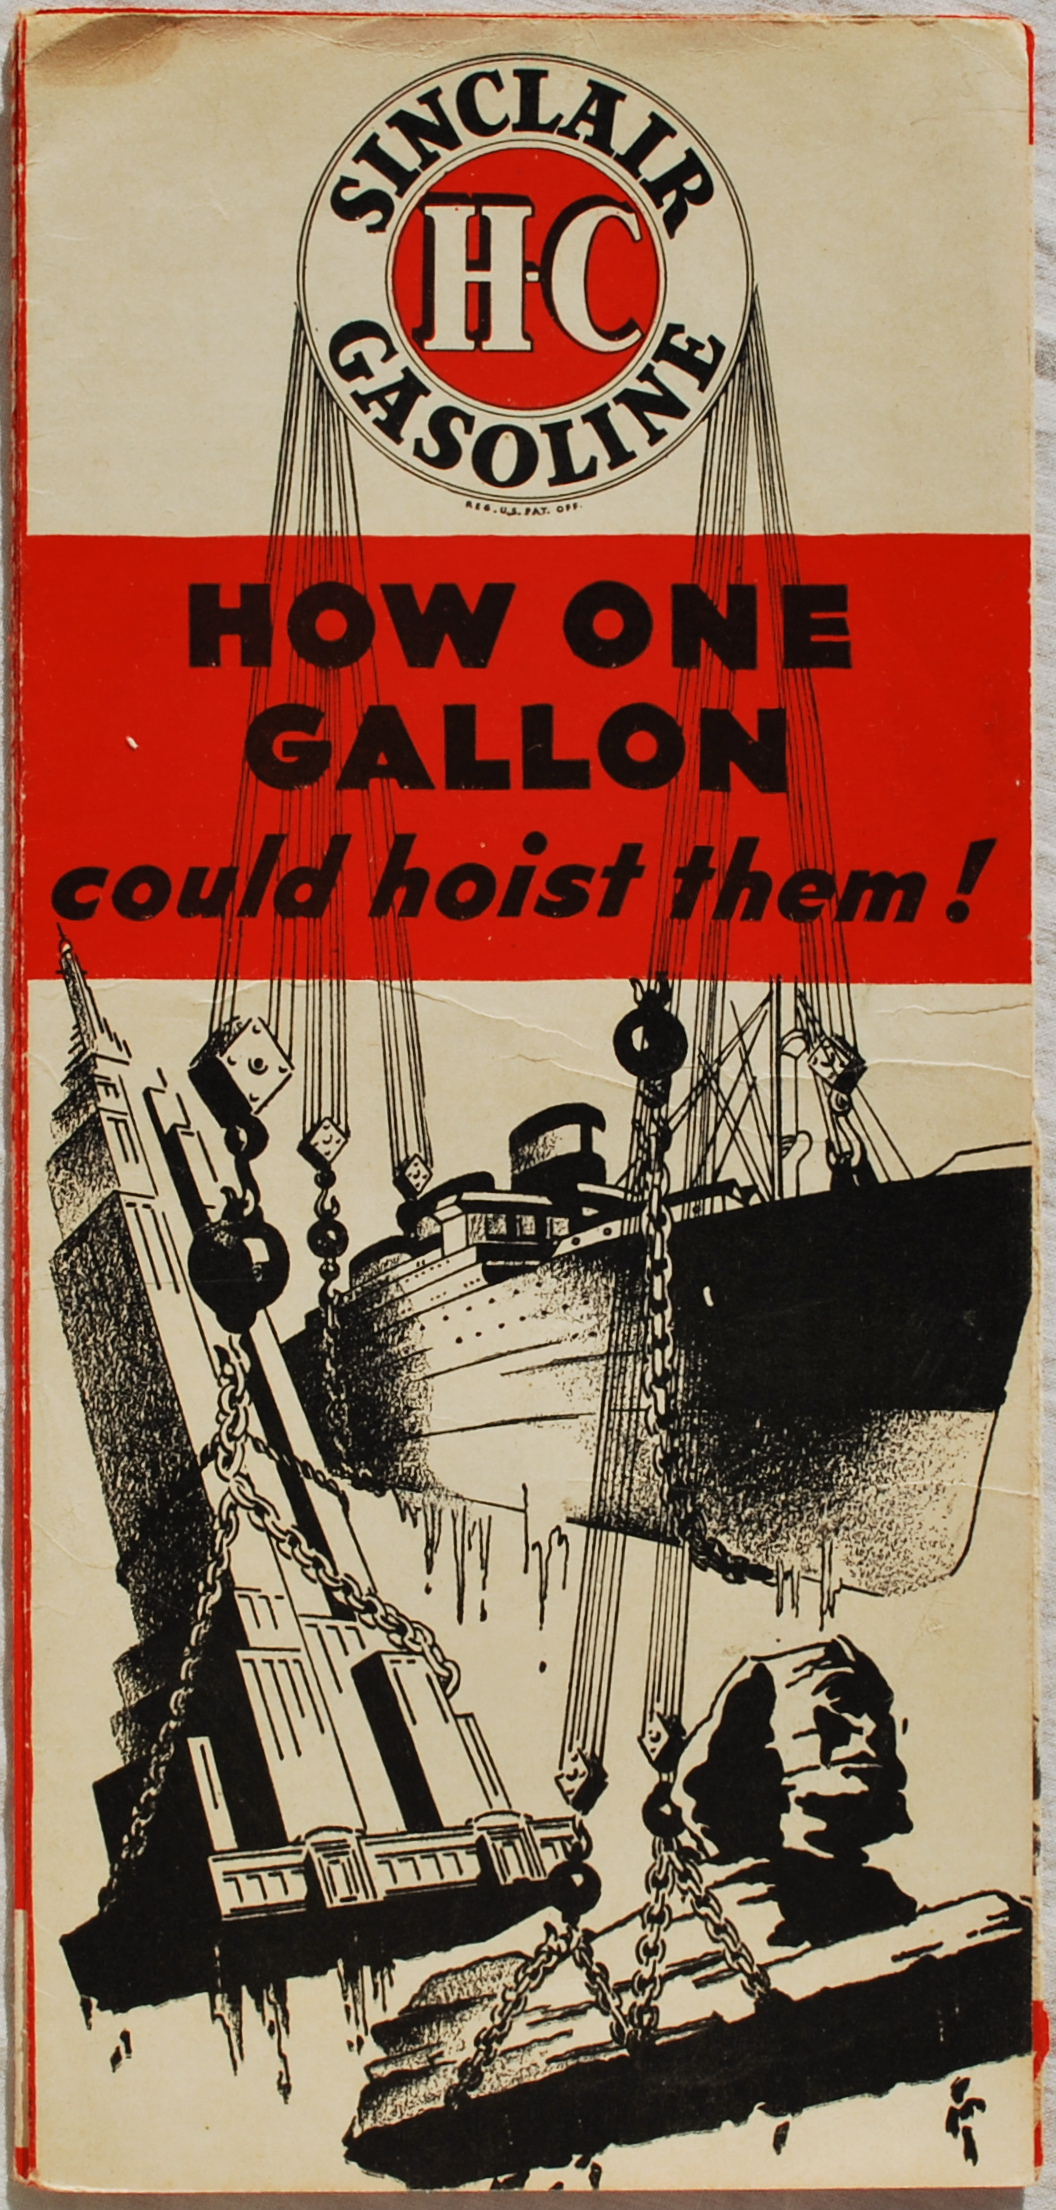 Image for Sinclair Gasoline.  How One Gallon Could Hoist Them!